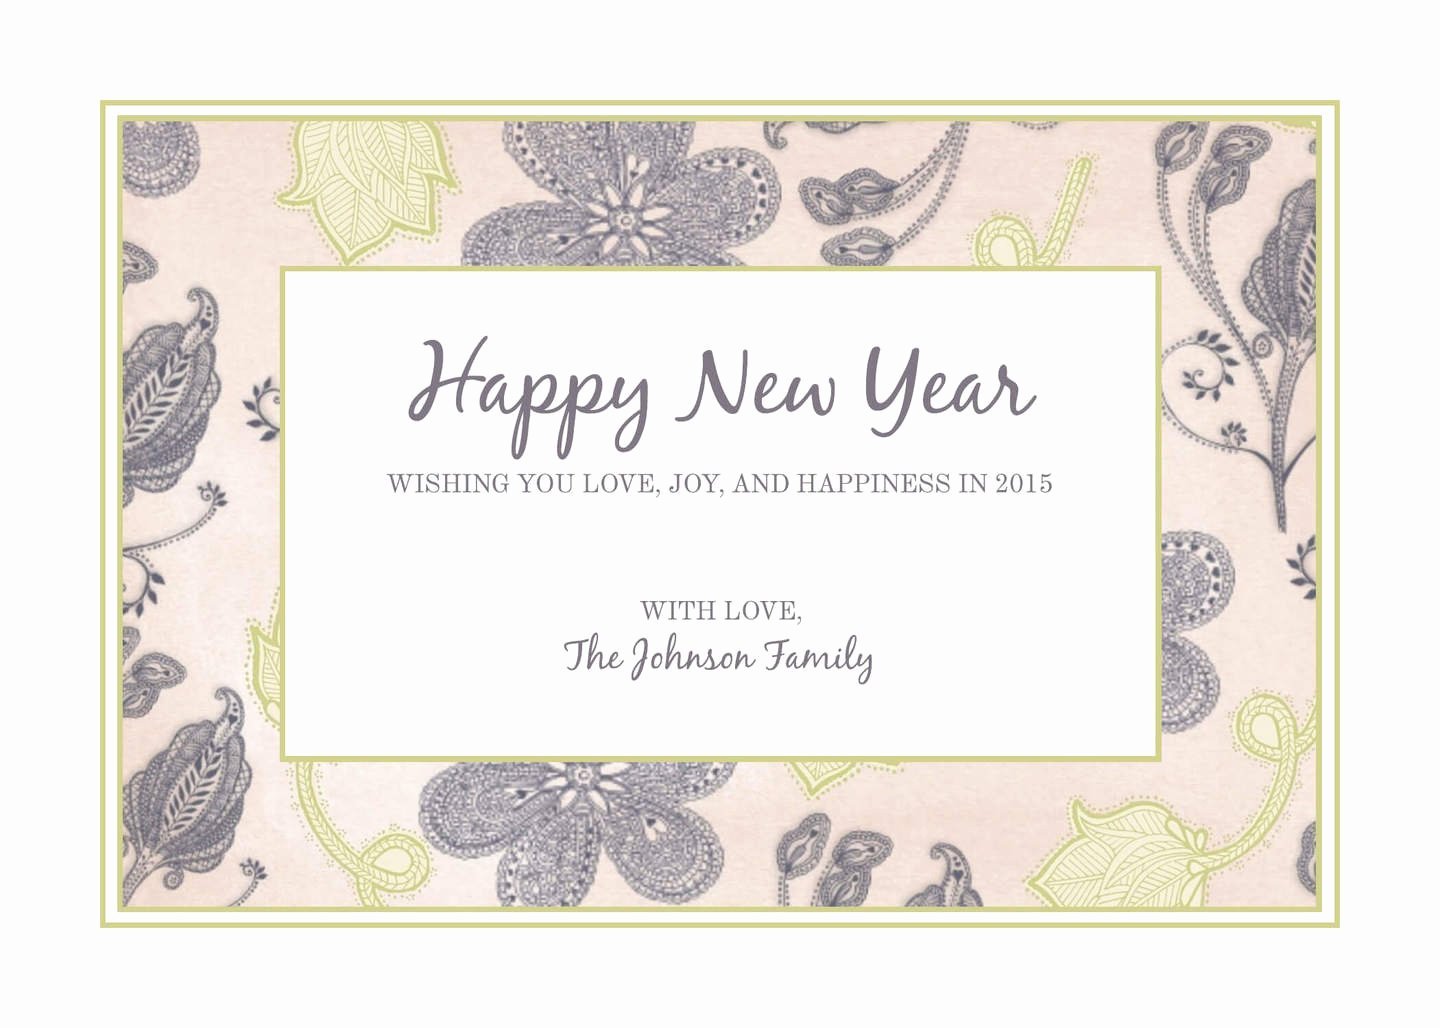 New Year Card Template Inspirational Free New Year Templates & Examples Lucidpress